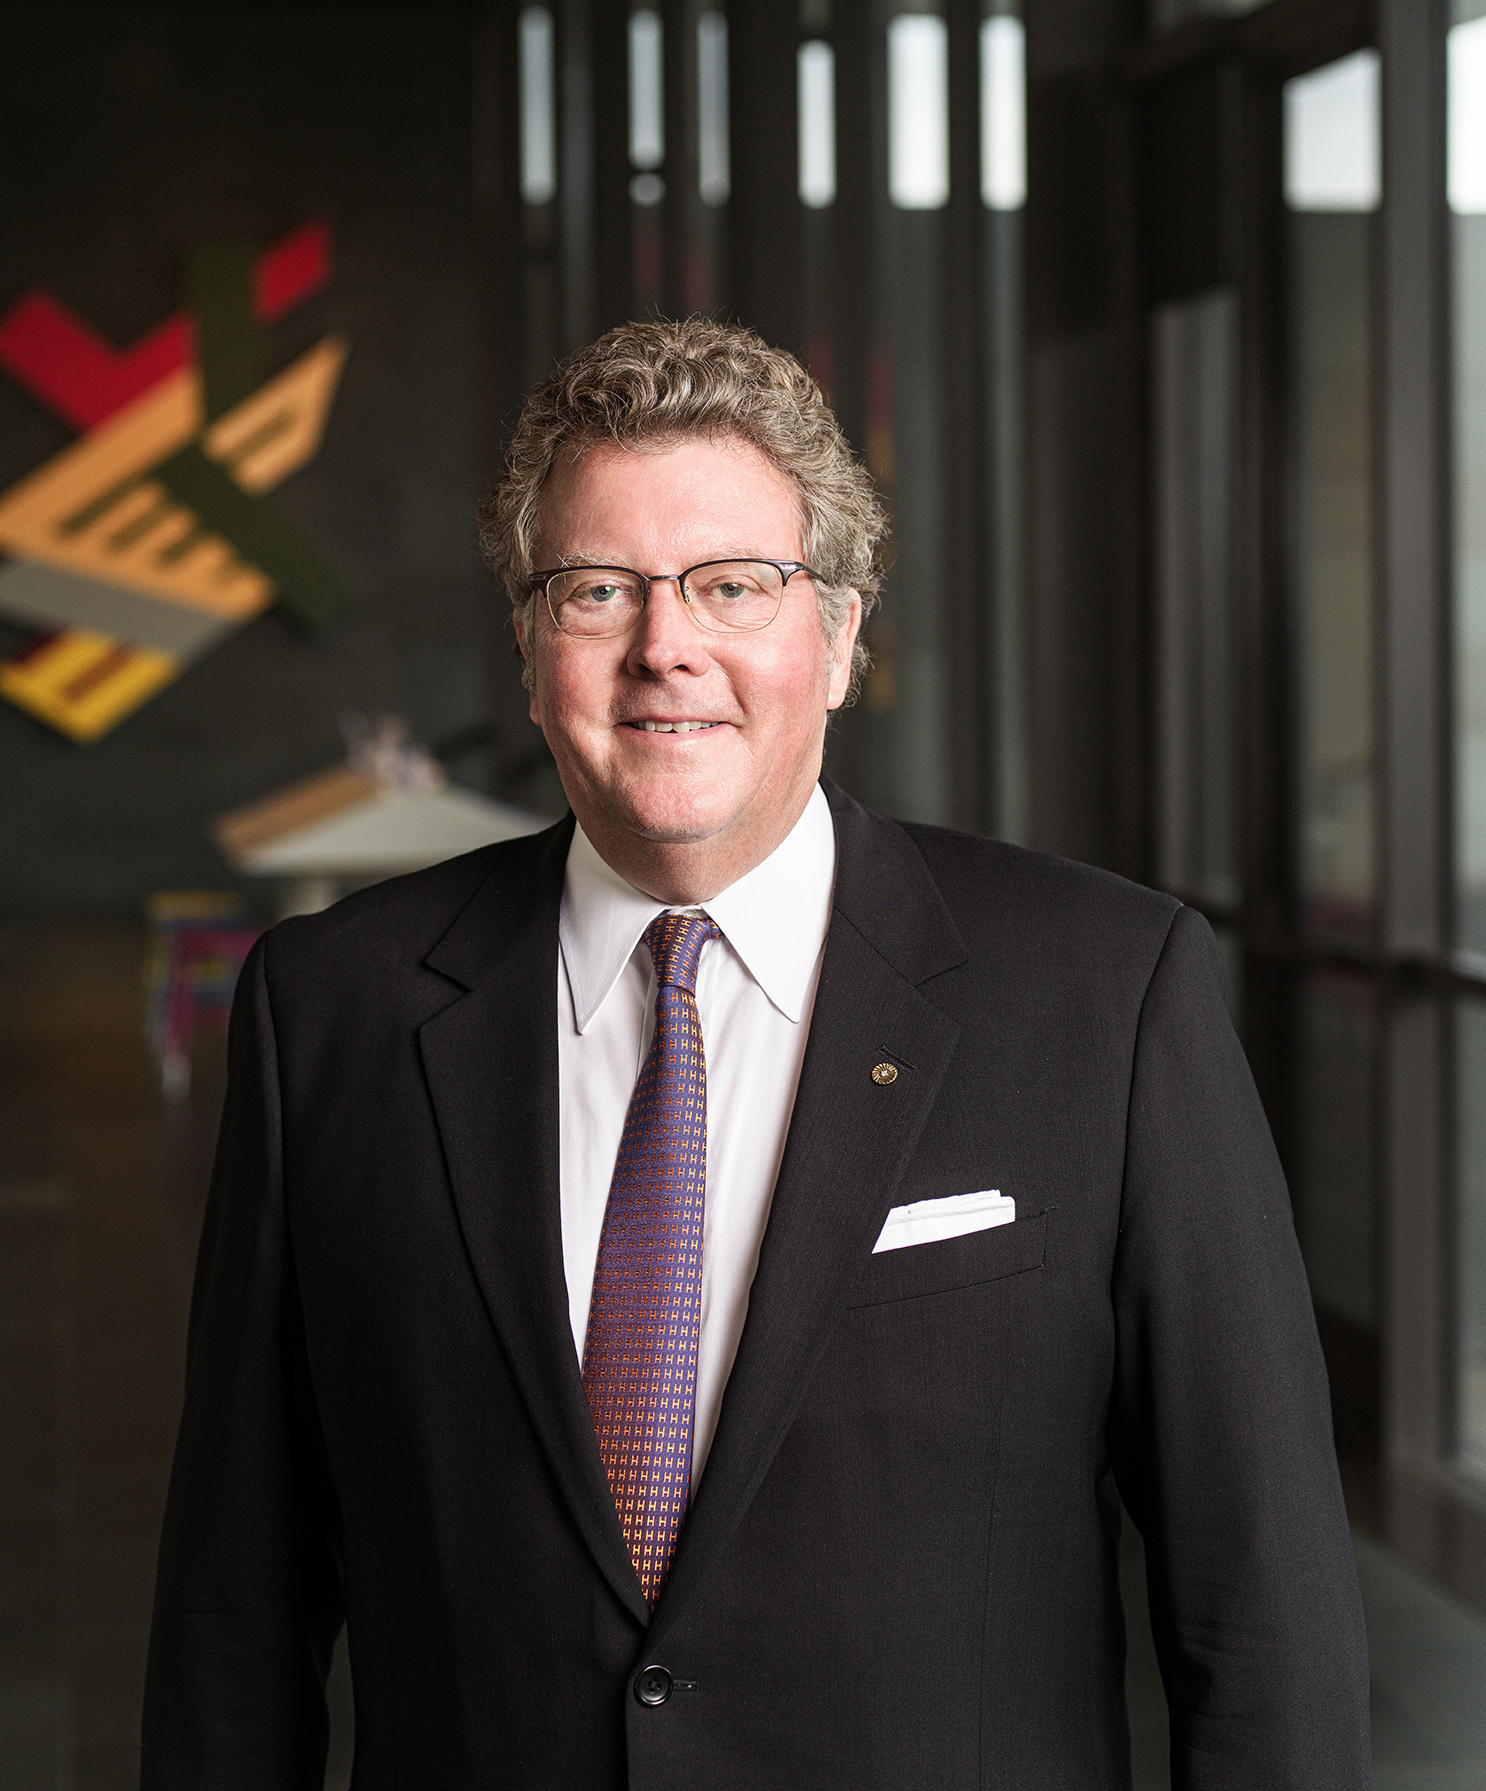 Get to Know Board President Don Frost